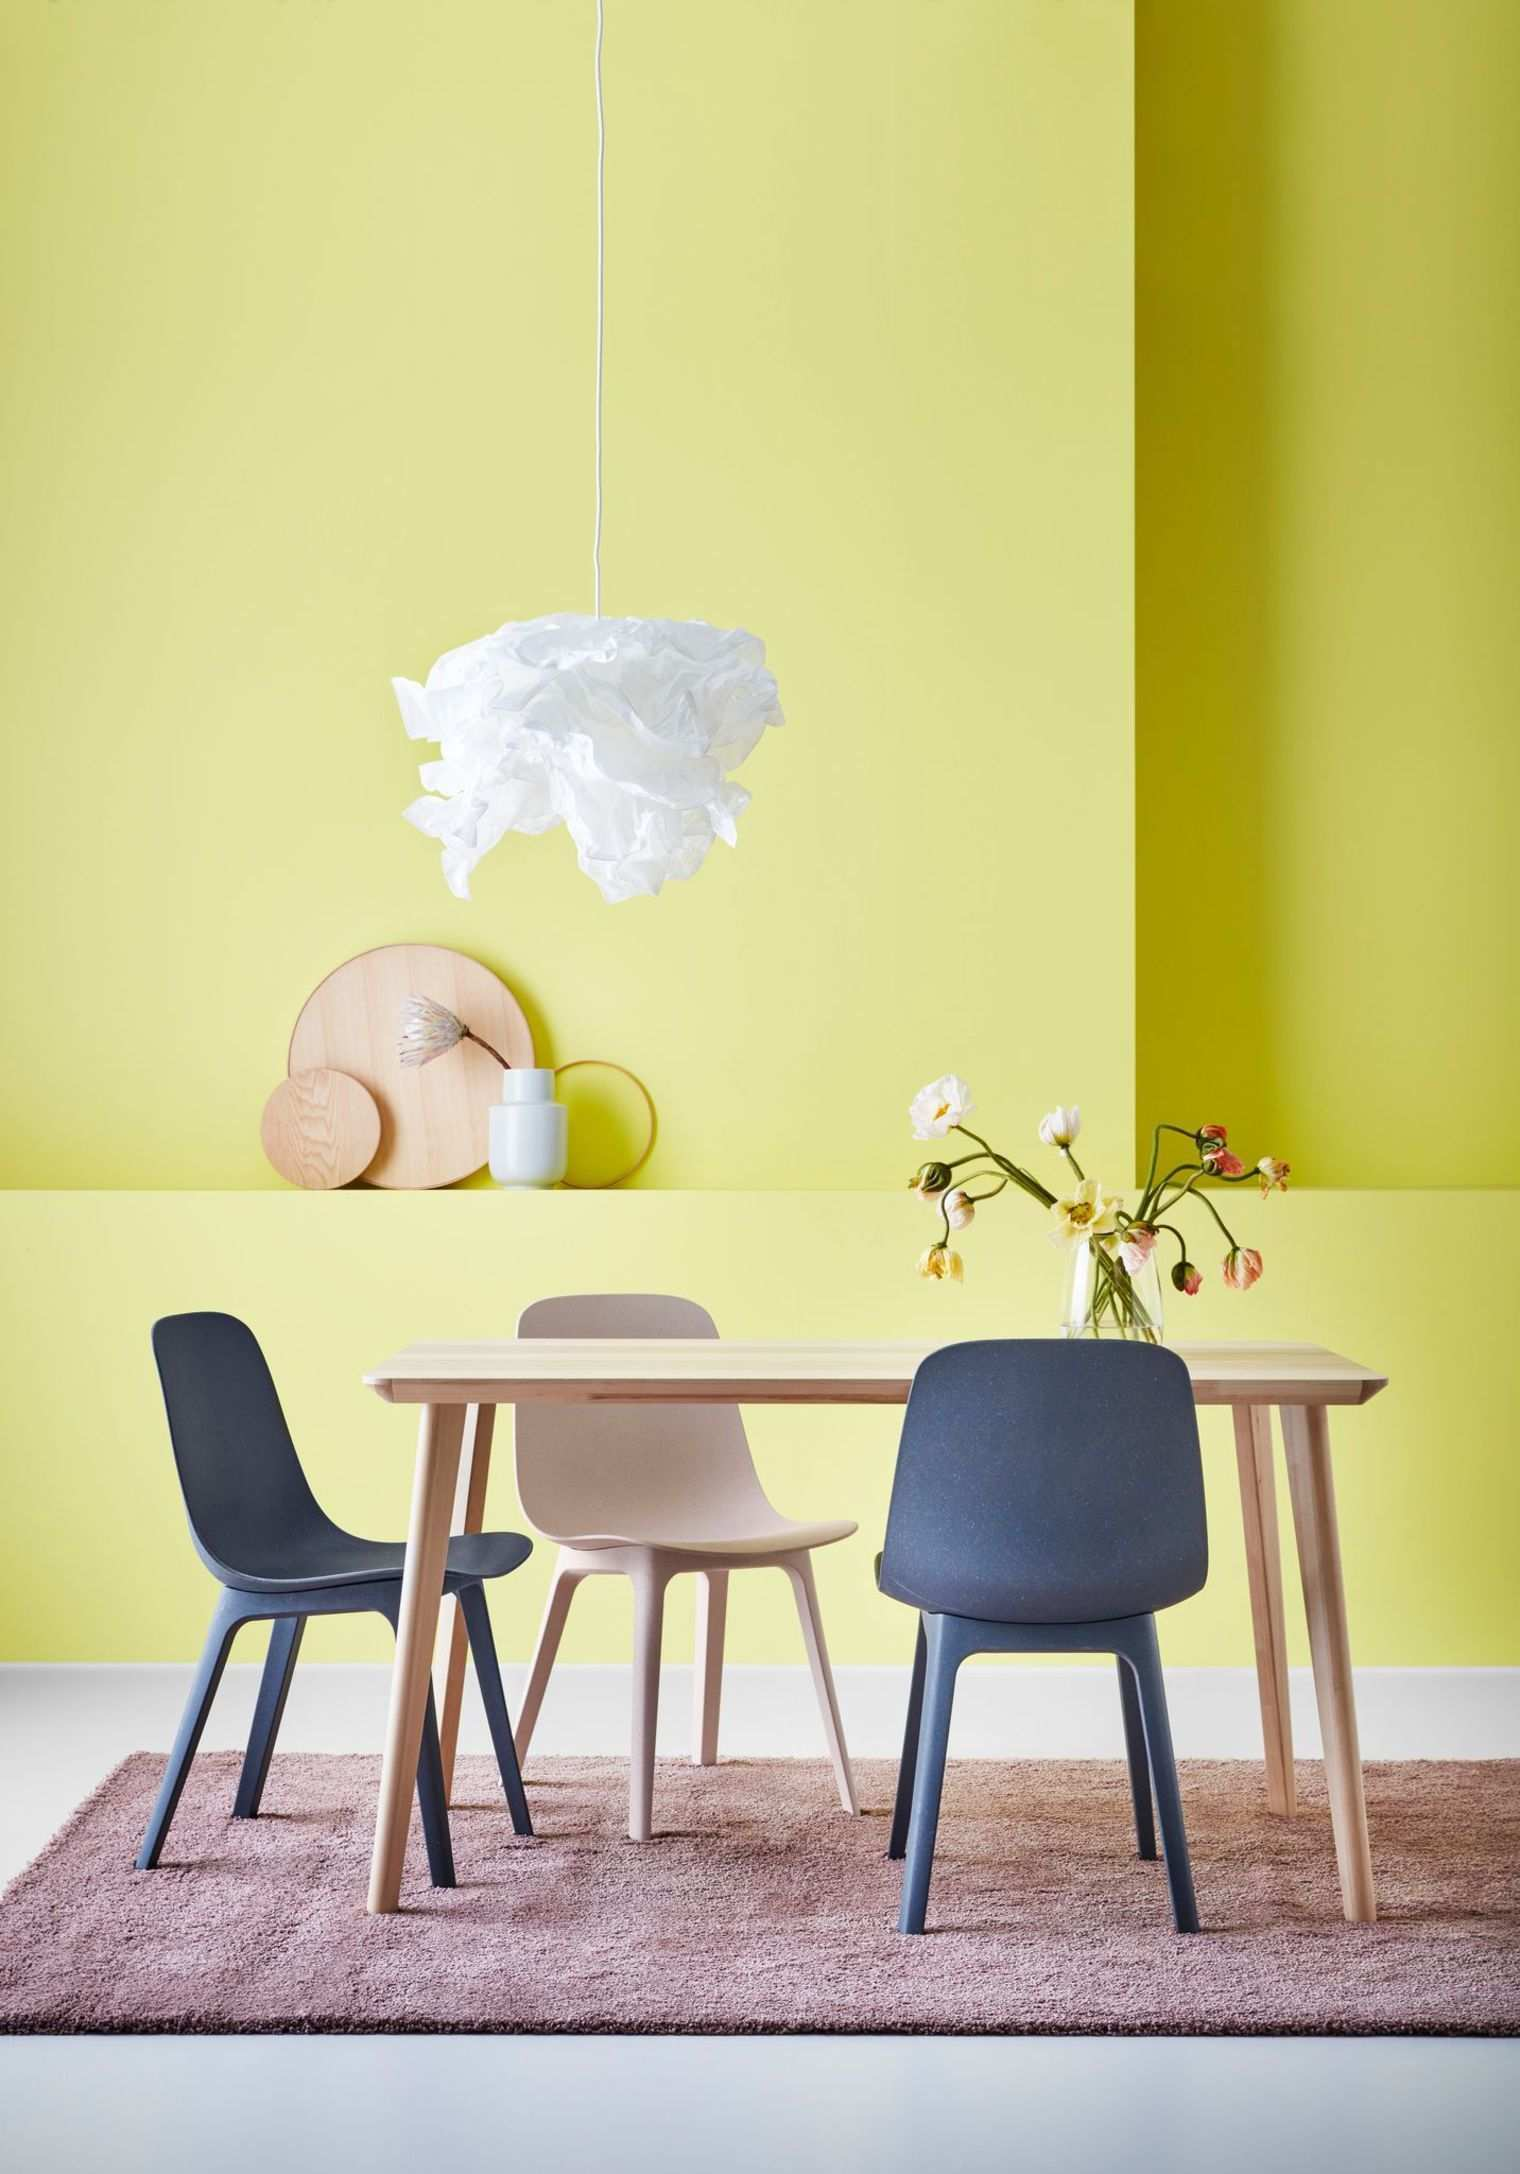 27 New Ikea 2020 Catalogue Uk Redesign and Concept with Ikea 2020 Catalogue Uk